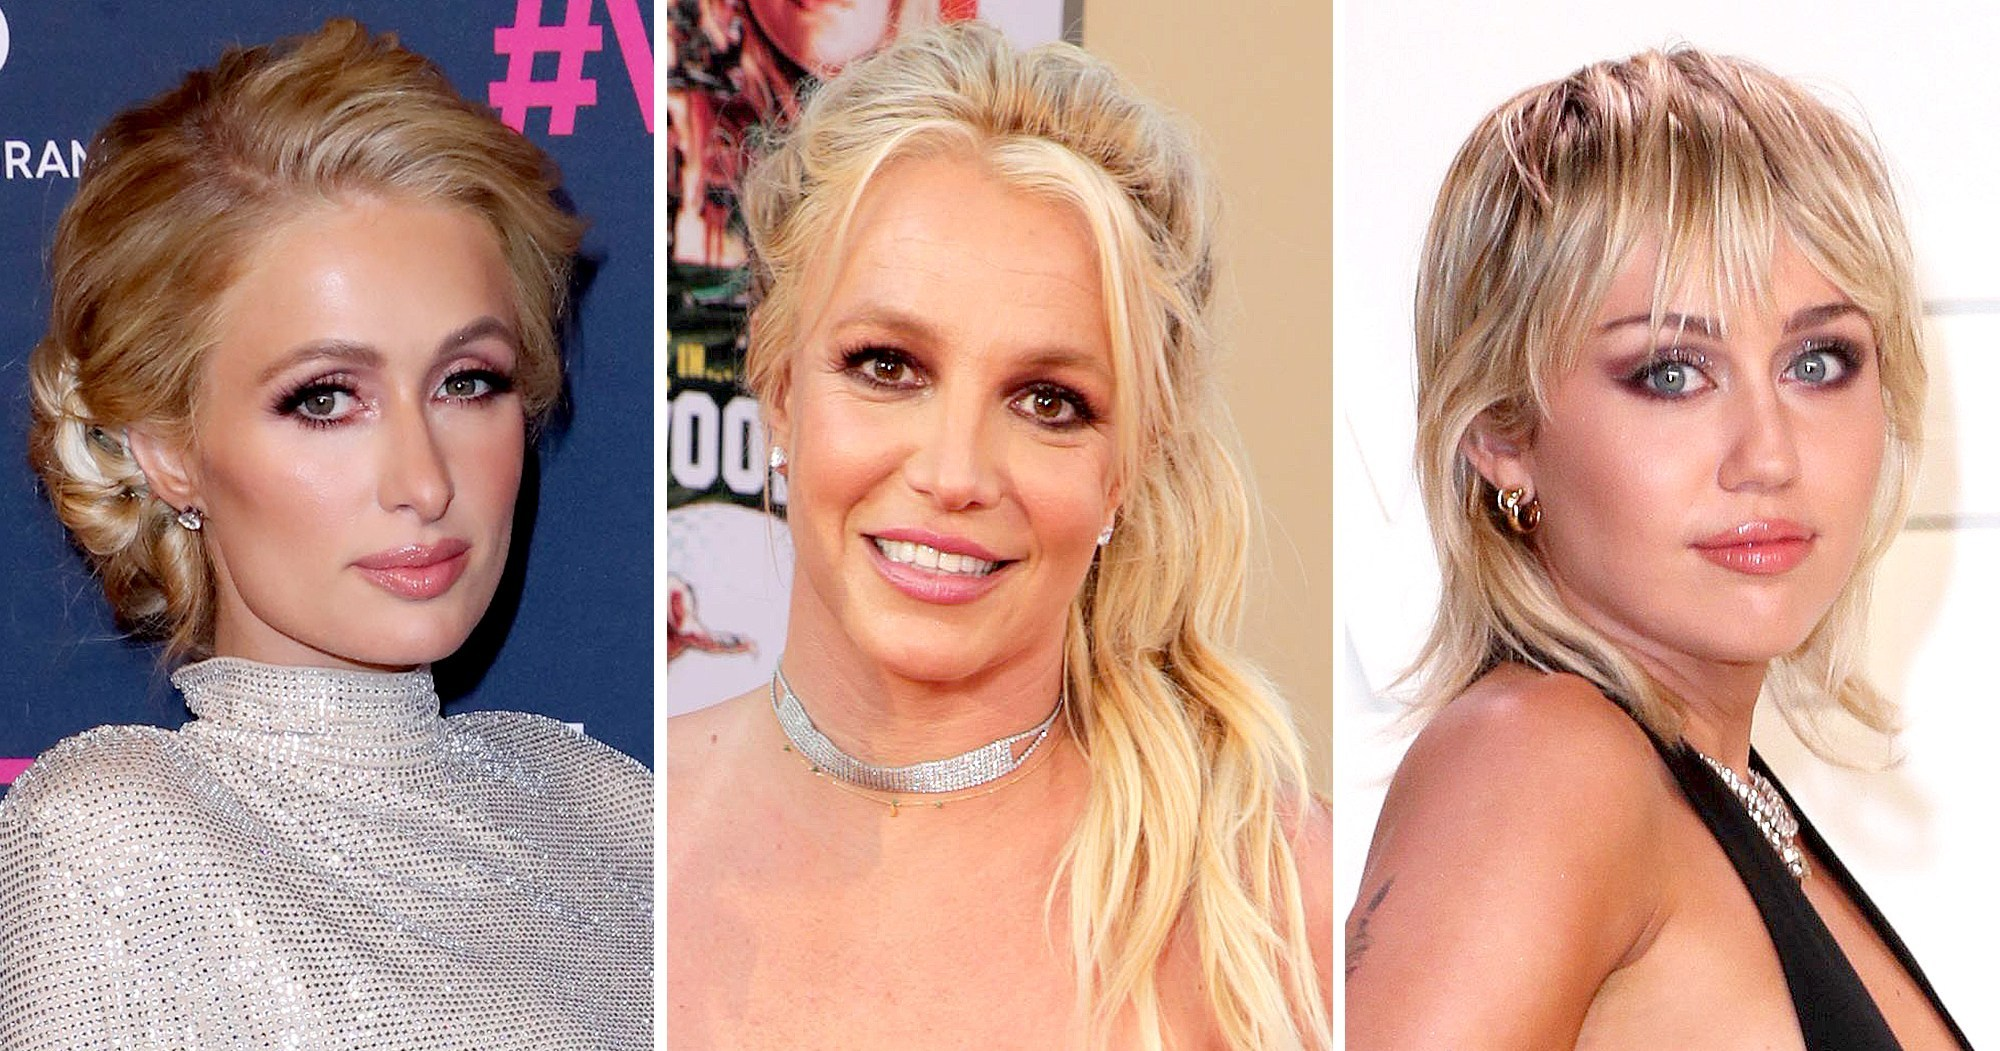 Paris Hilton, Miley Cyrus, More Celebs Support the #FreeBritney Movement